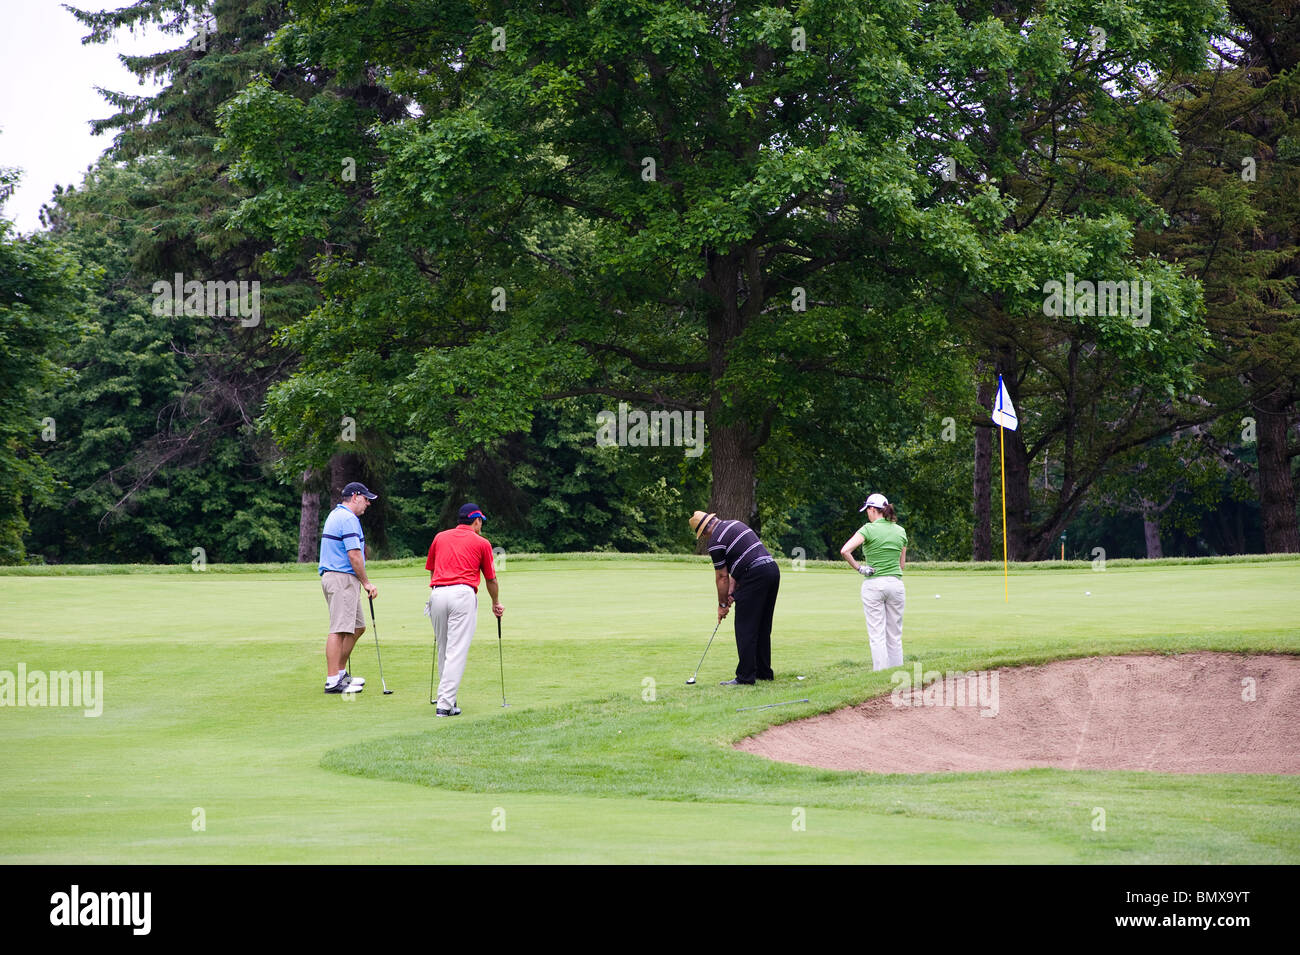 A golfer hits his approach shot onto the green while the  other members of his foursome are watching. - Stock Image